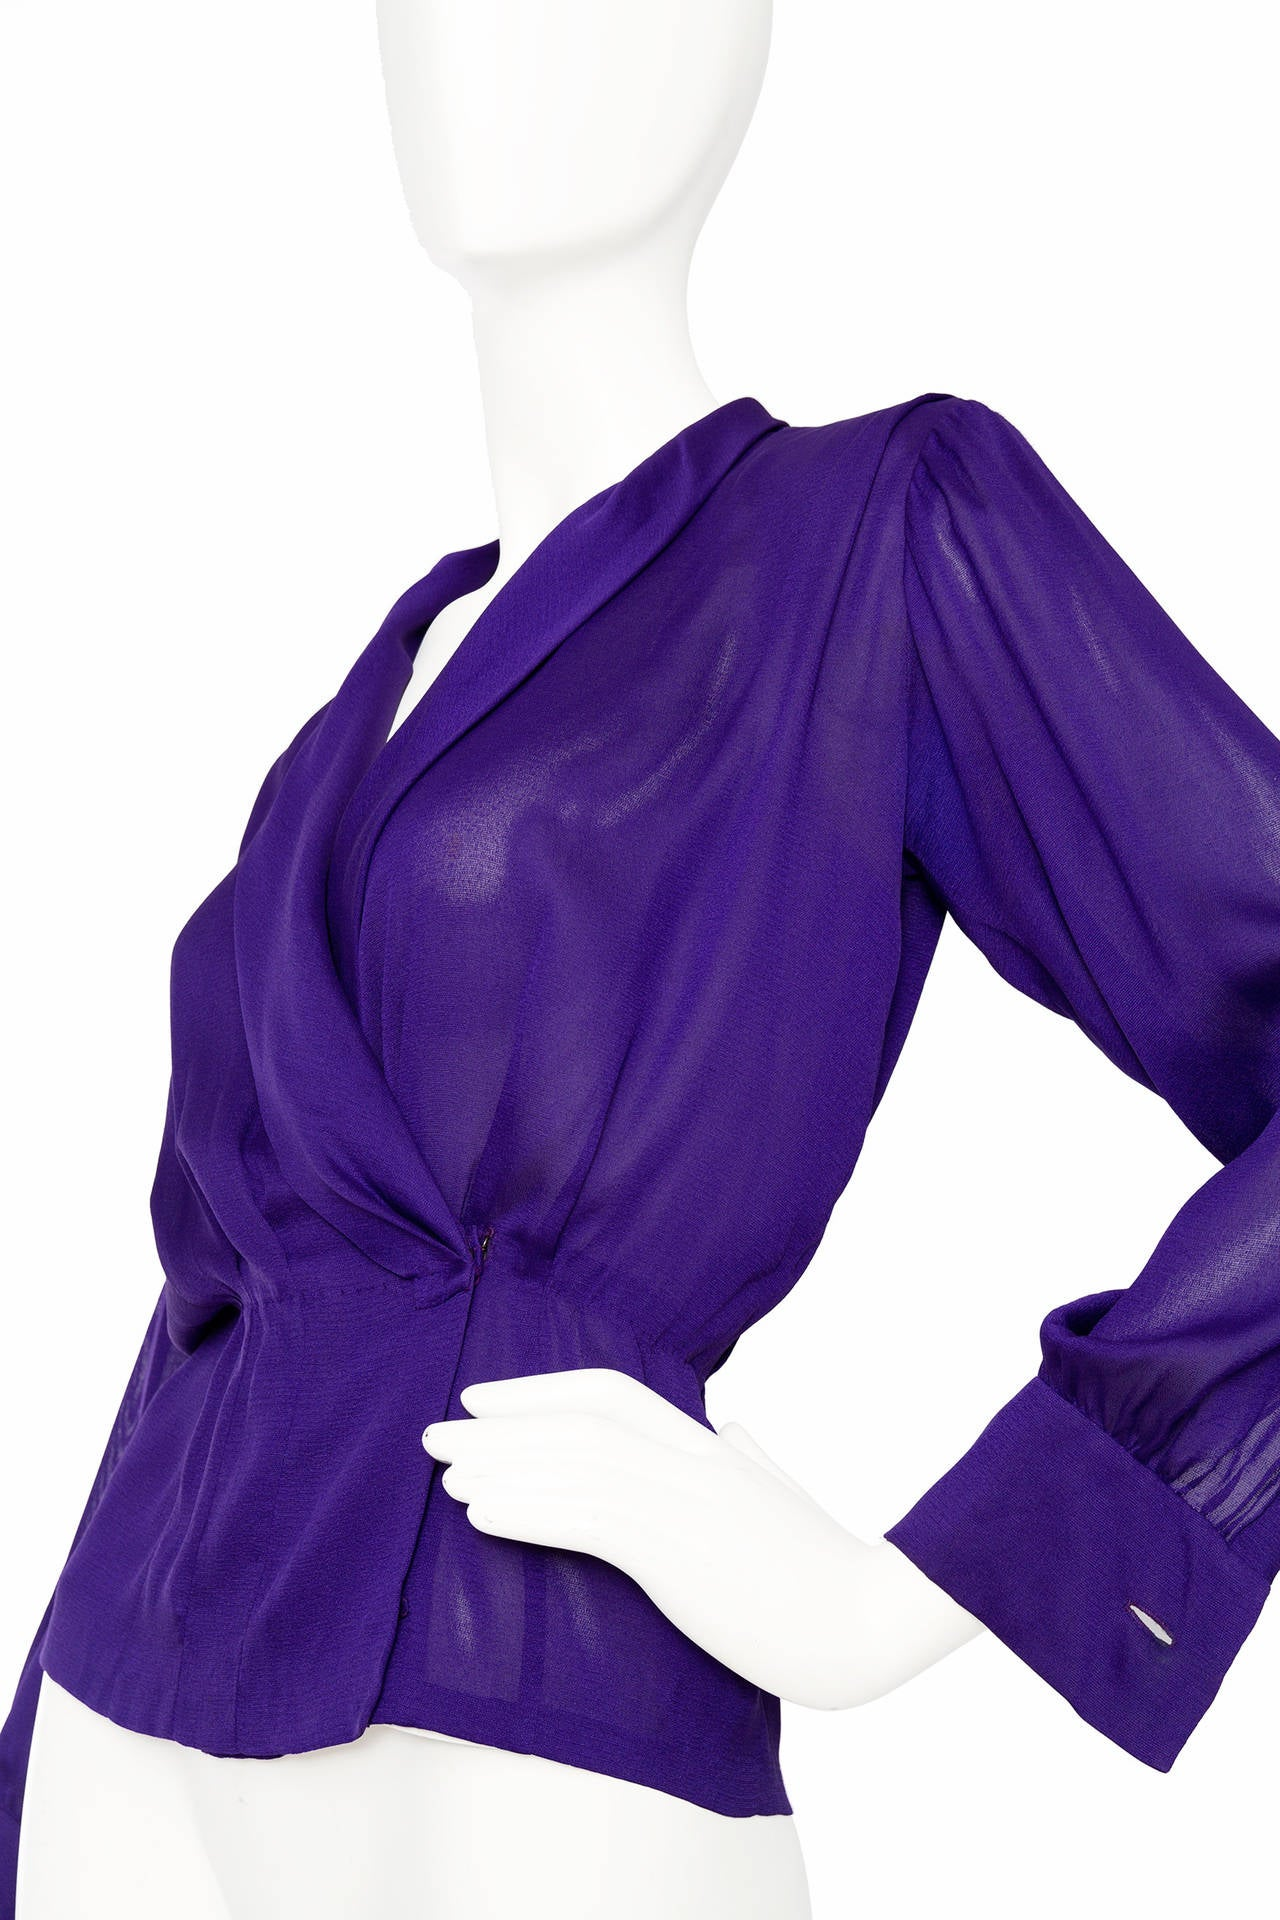 1980s Yves Saint Laurent Haute Couture Silk Jersey Blouse 6